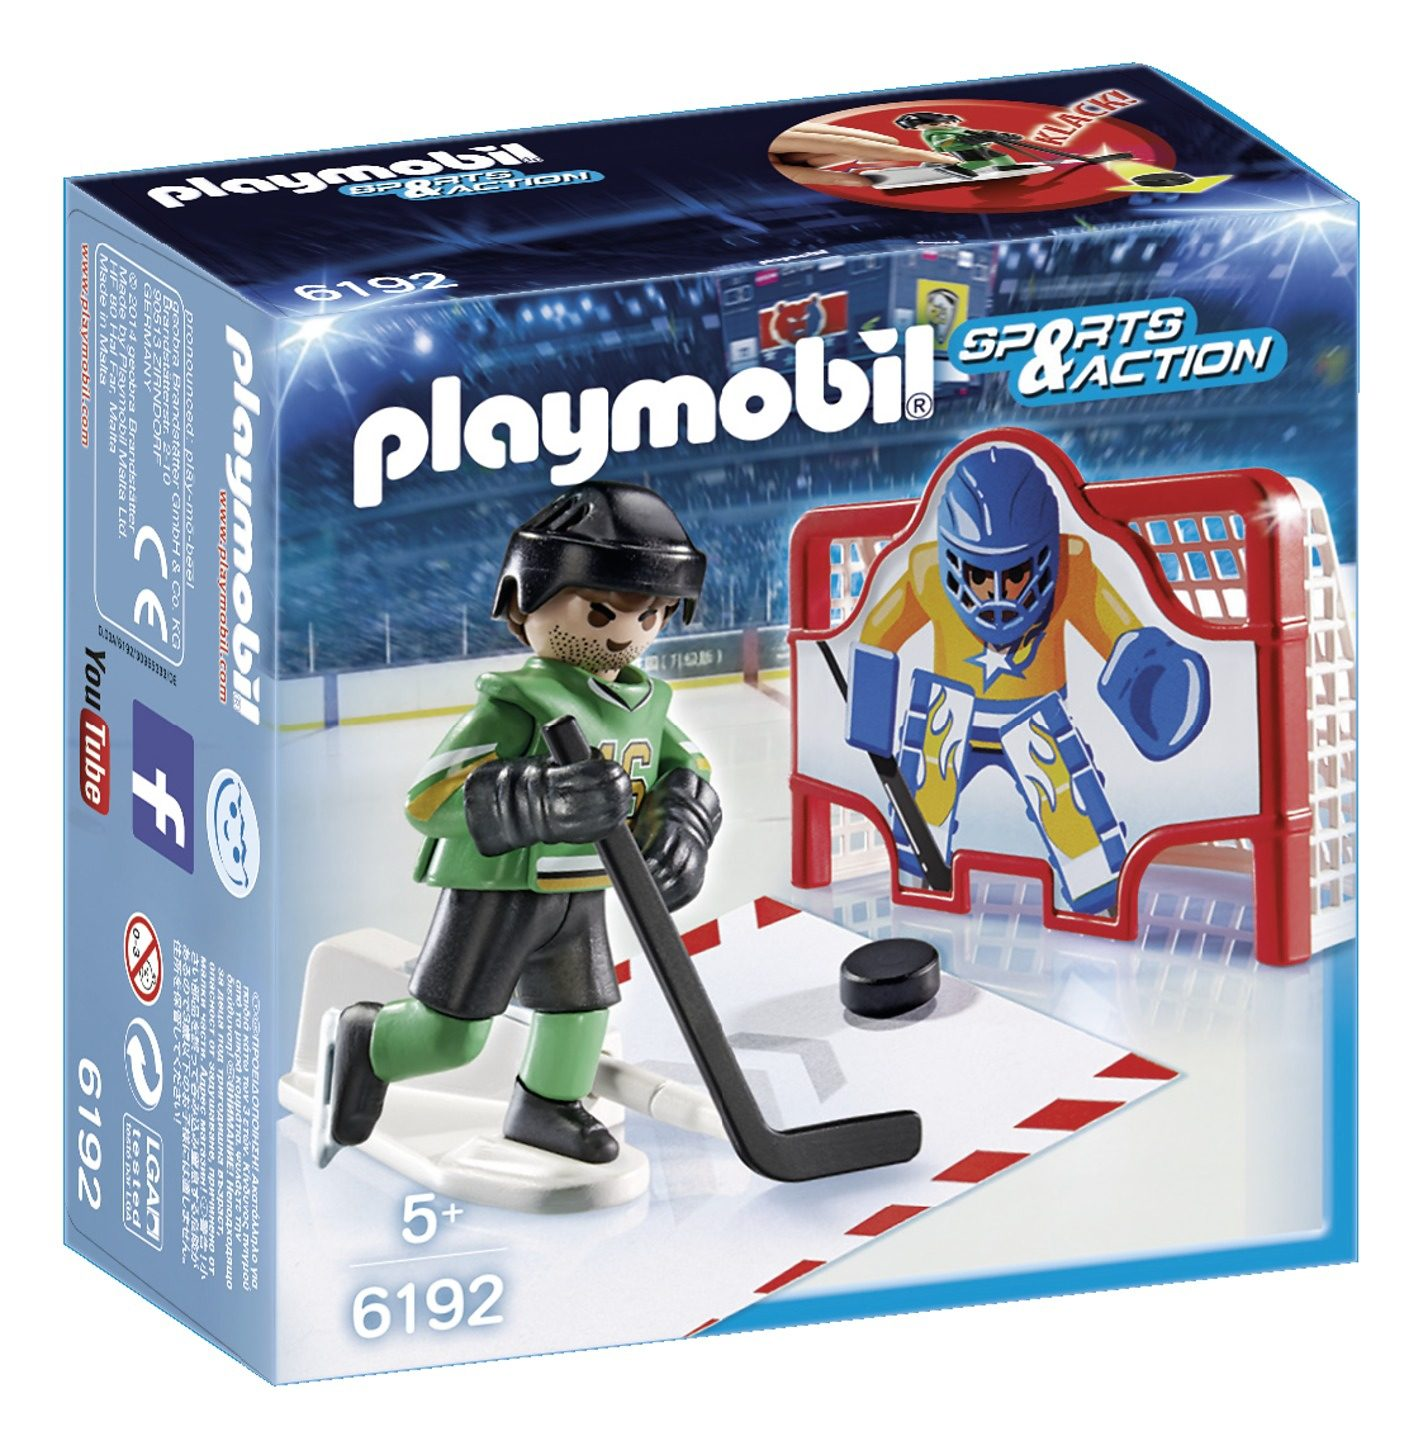 Playmobil® Eishockey-Tortraining (6192), Sports & Action